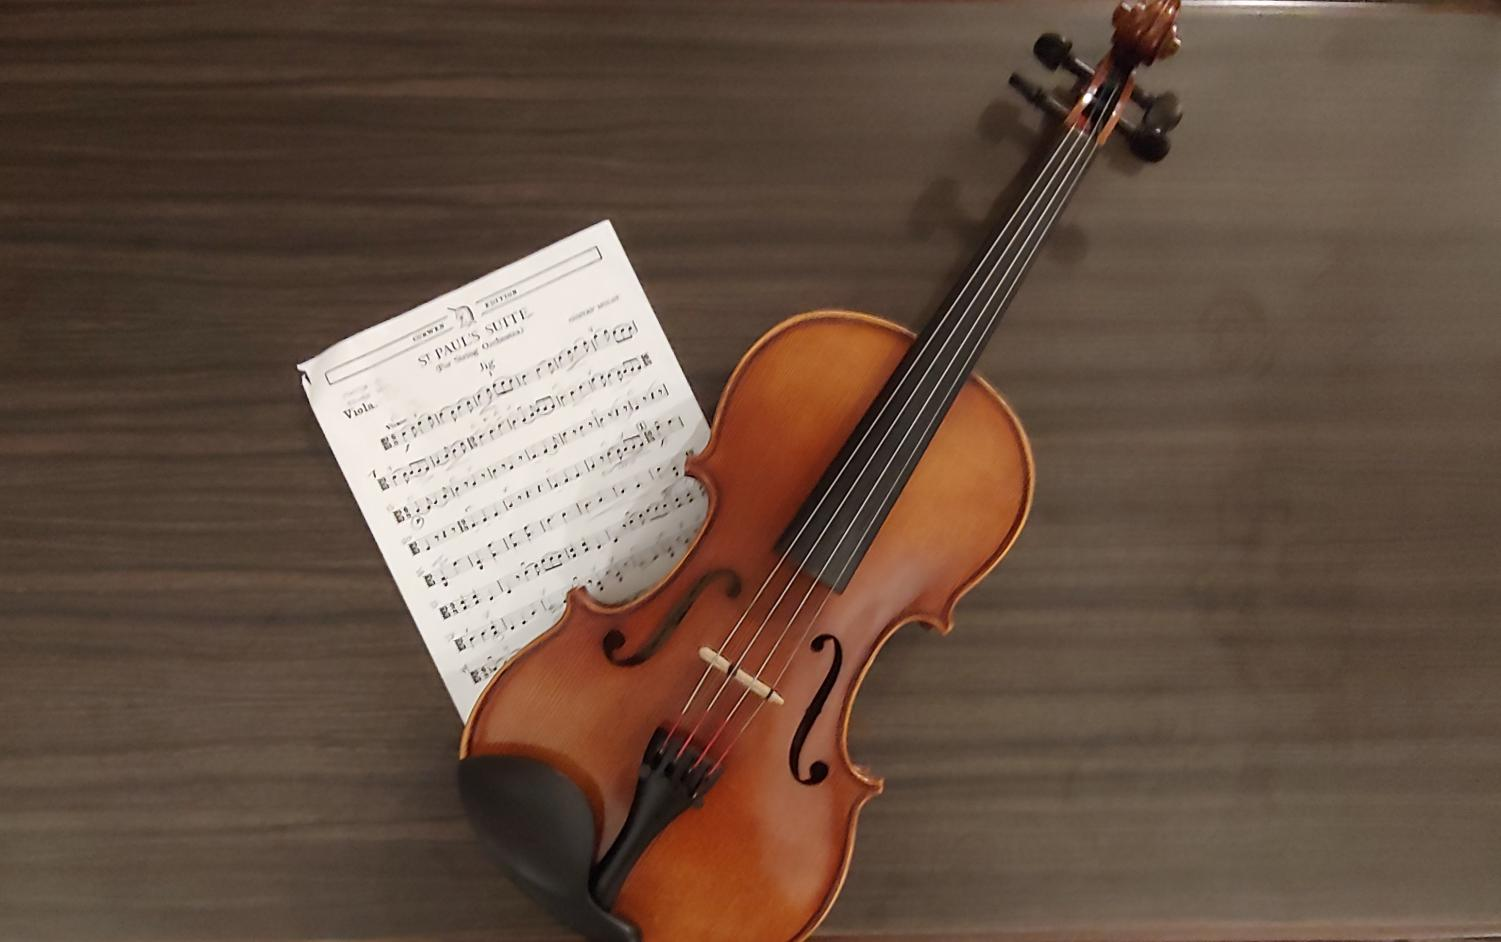 Practice Makes Perfect. The viola and music shown belong to Elijah Reed (11, YPAS) and will both be used for the big night. Photo by Evie Reed.